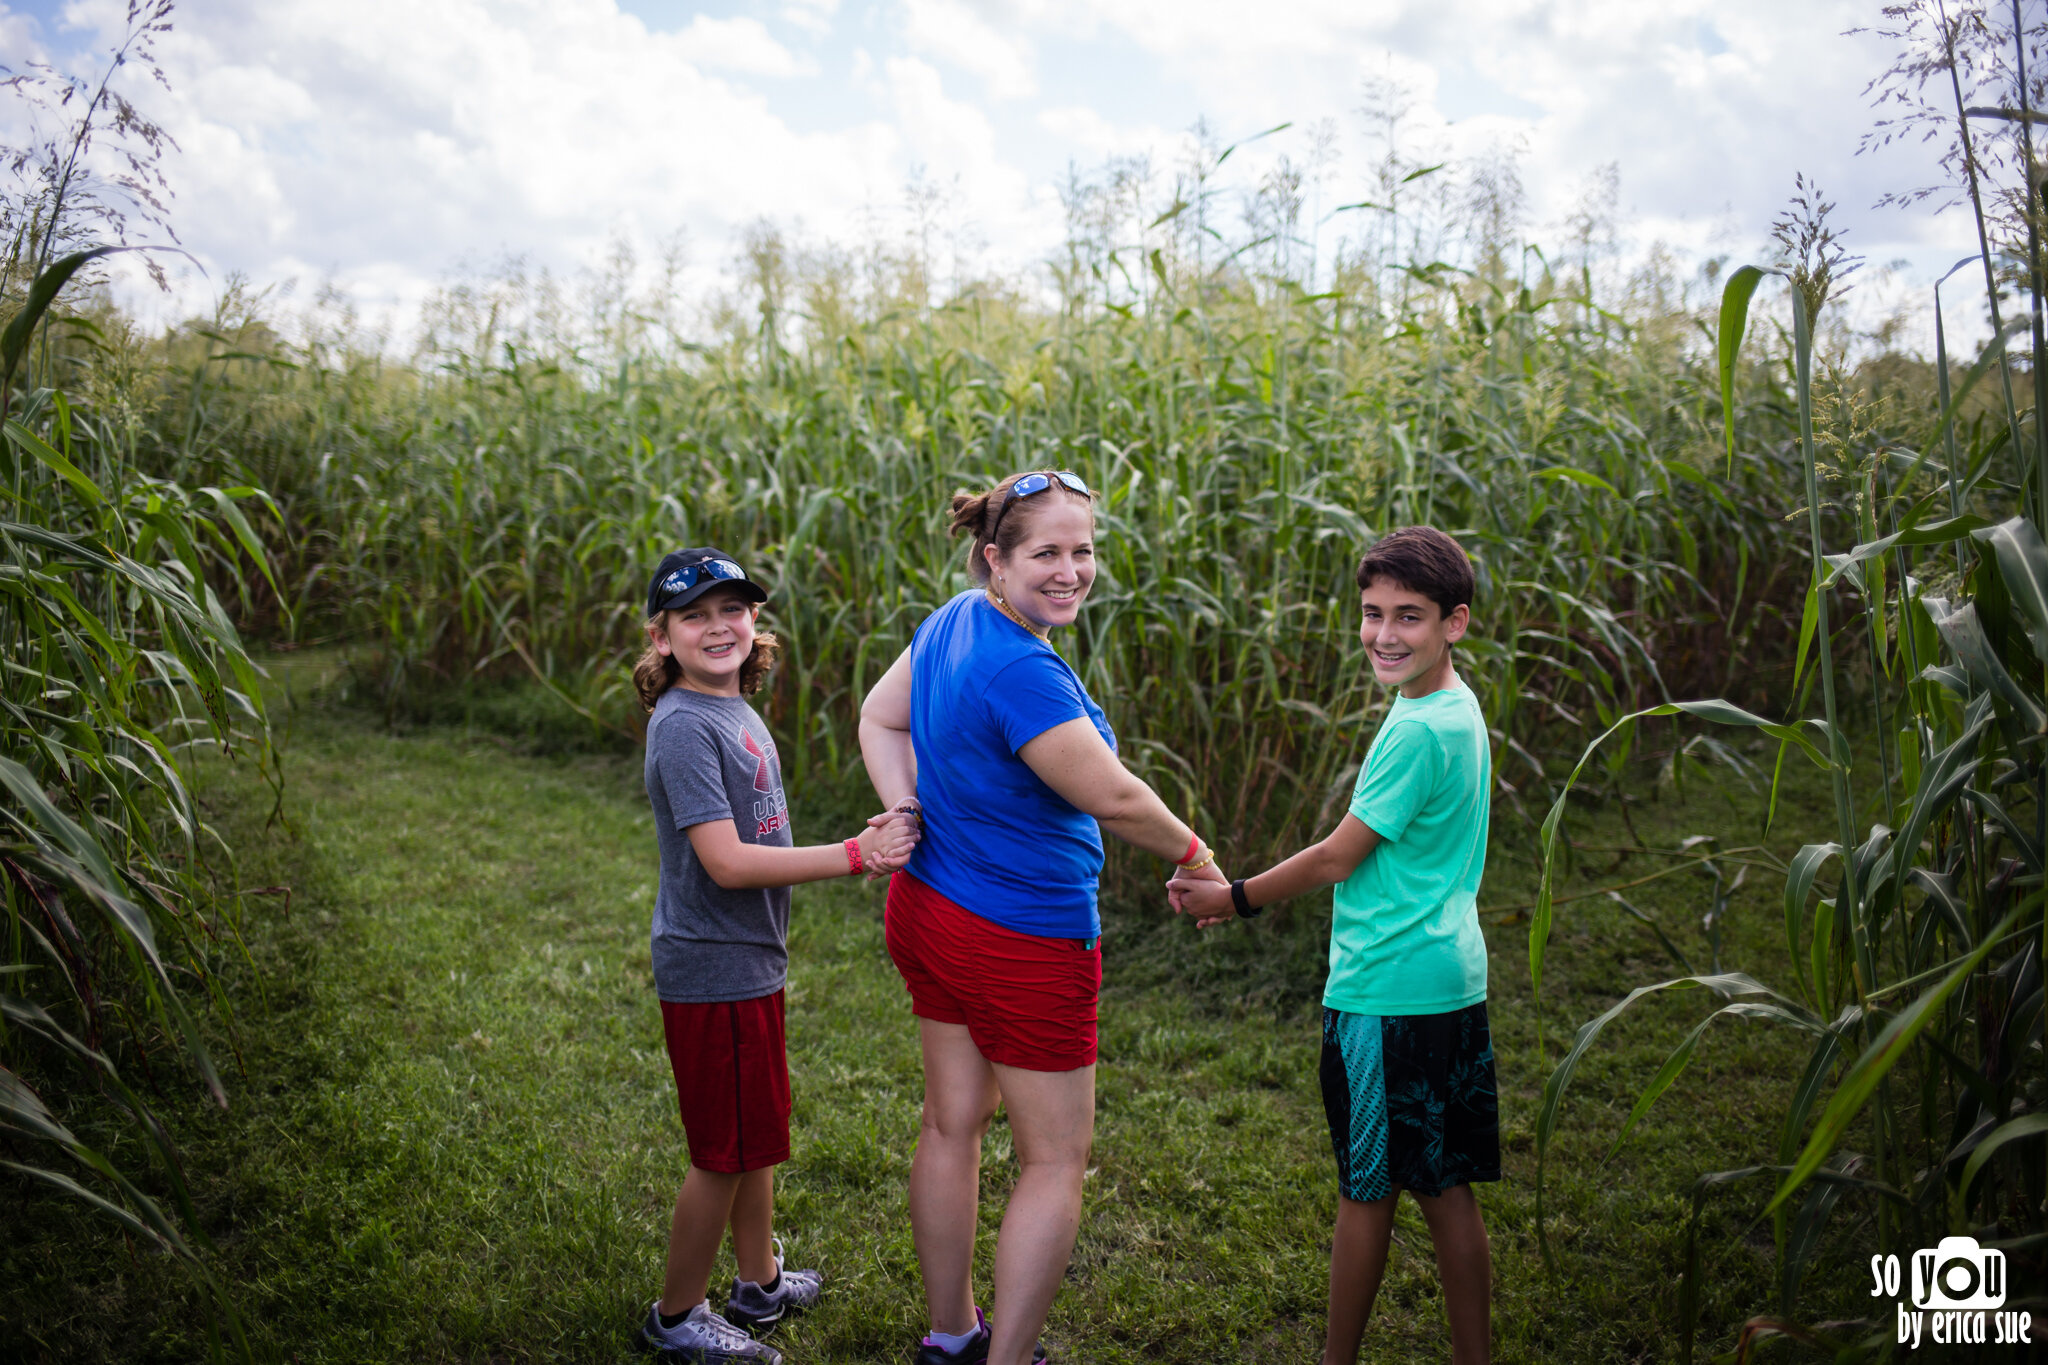 so-you-by-erica-sue-disney-photography-family-mickey-not-so-scary-partin-ranch-corn-maze-old-town-orlando-4262.jpg